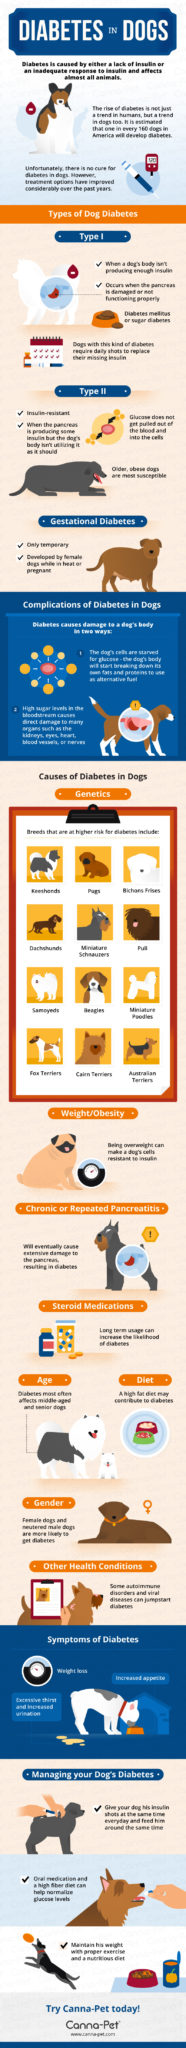 Dog Diabetes | Canna-Pet